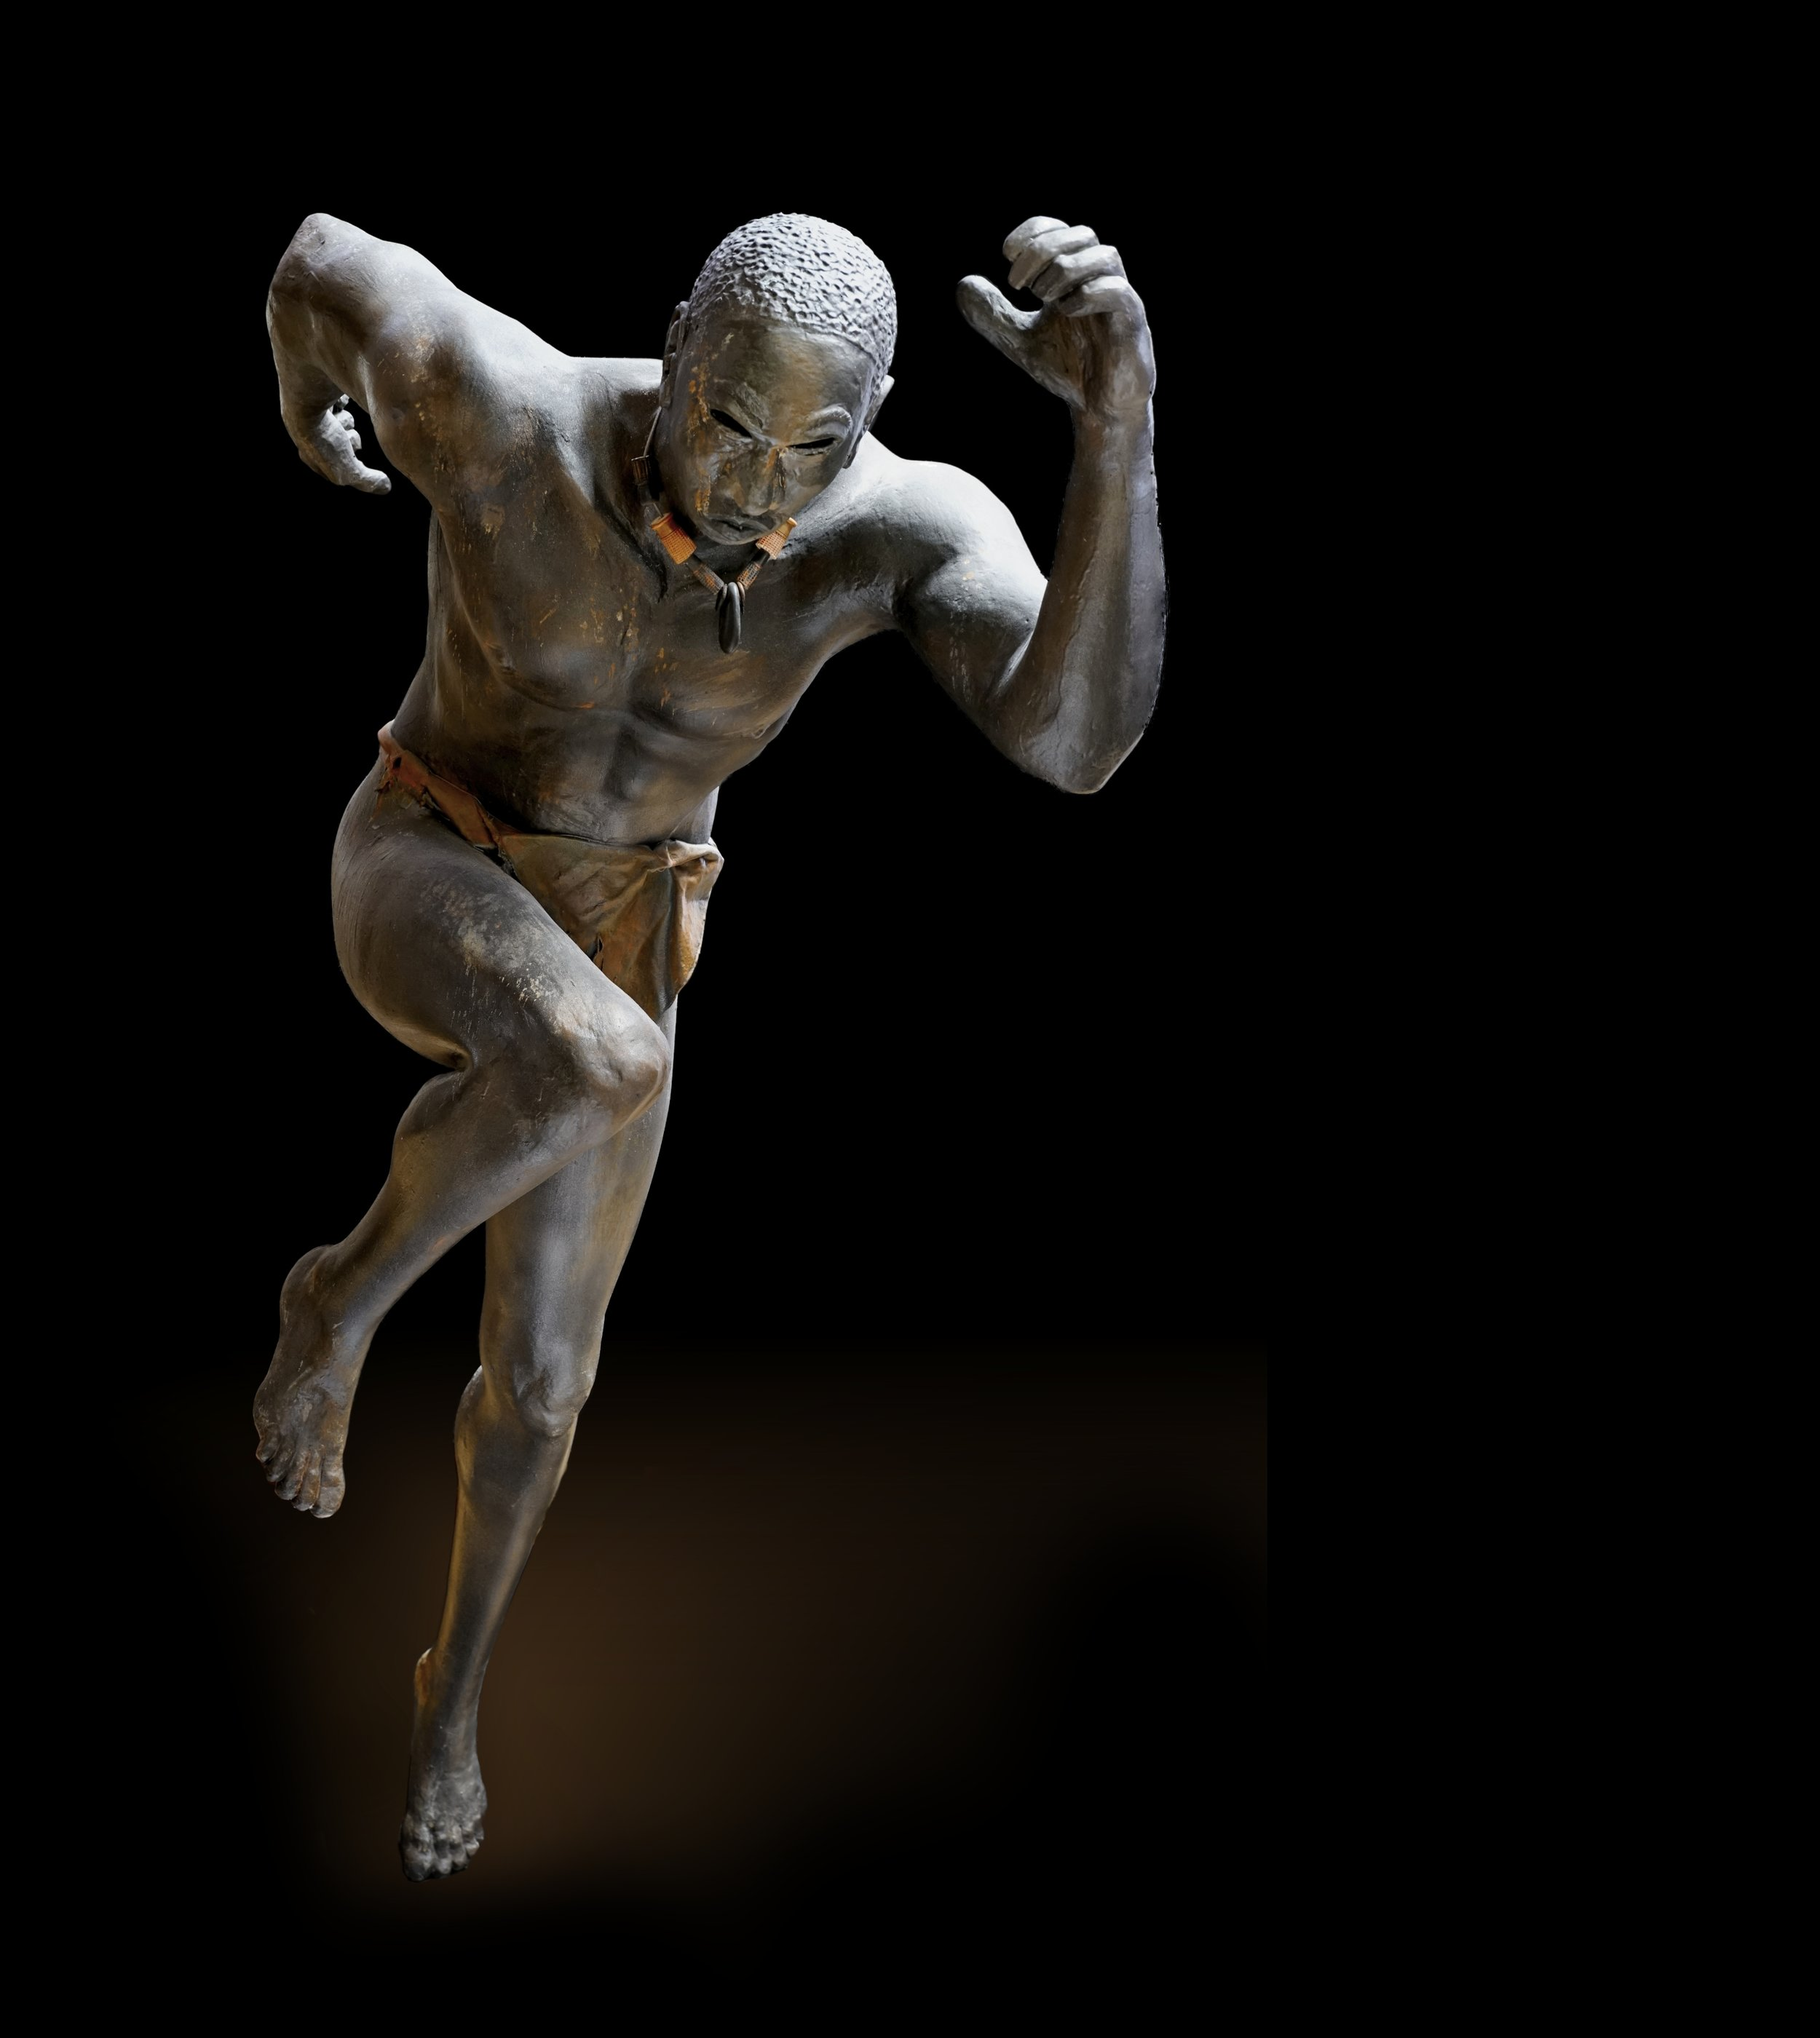 sculpture of African man running, by Aaron Paskins